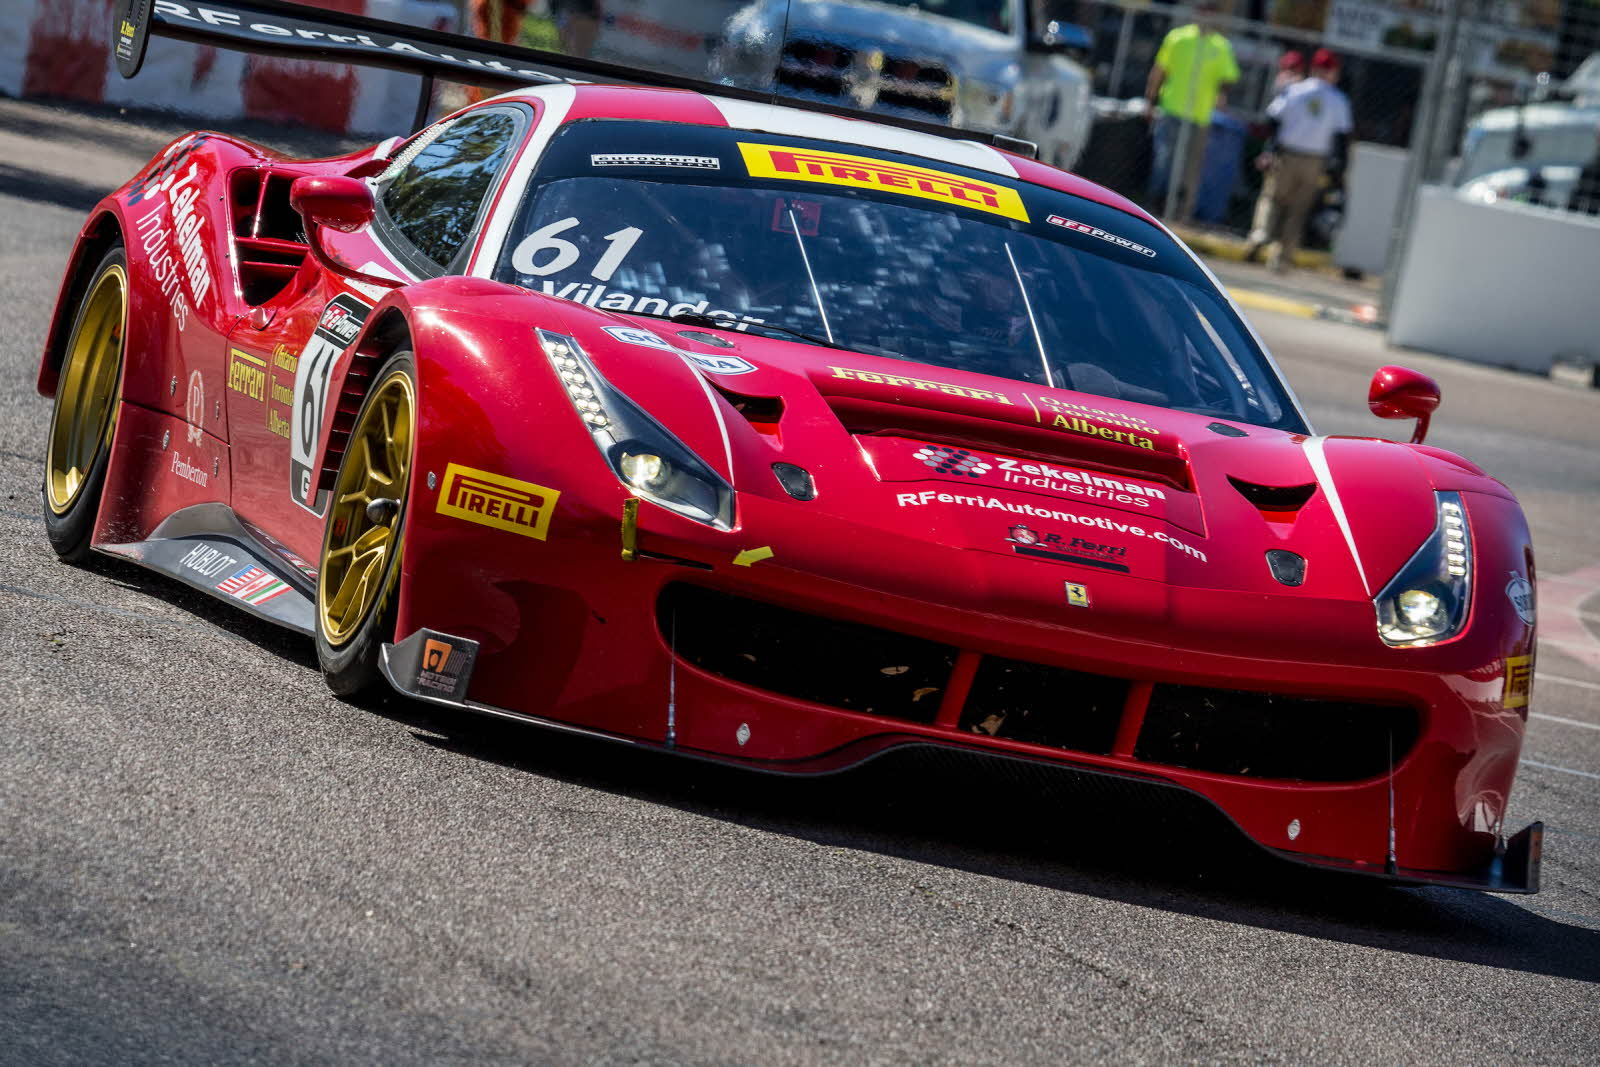 Toni Vilander in the #61 R. Ferri Motorsport Ferrari 488 GT3. [photo courtesy Pirelli World Challenge]